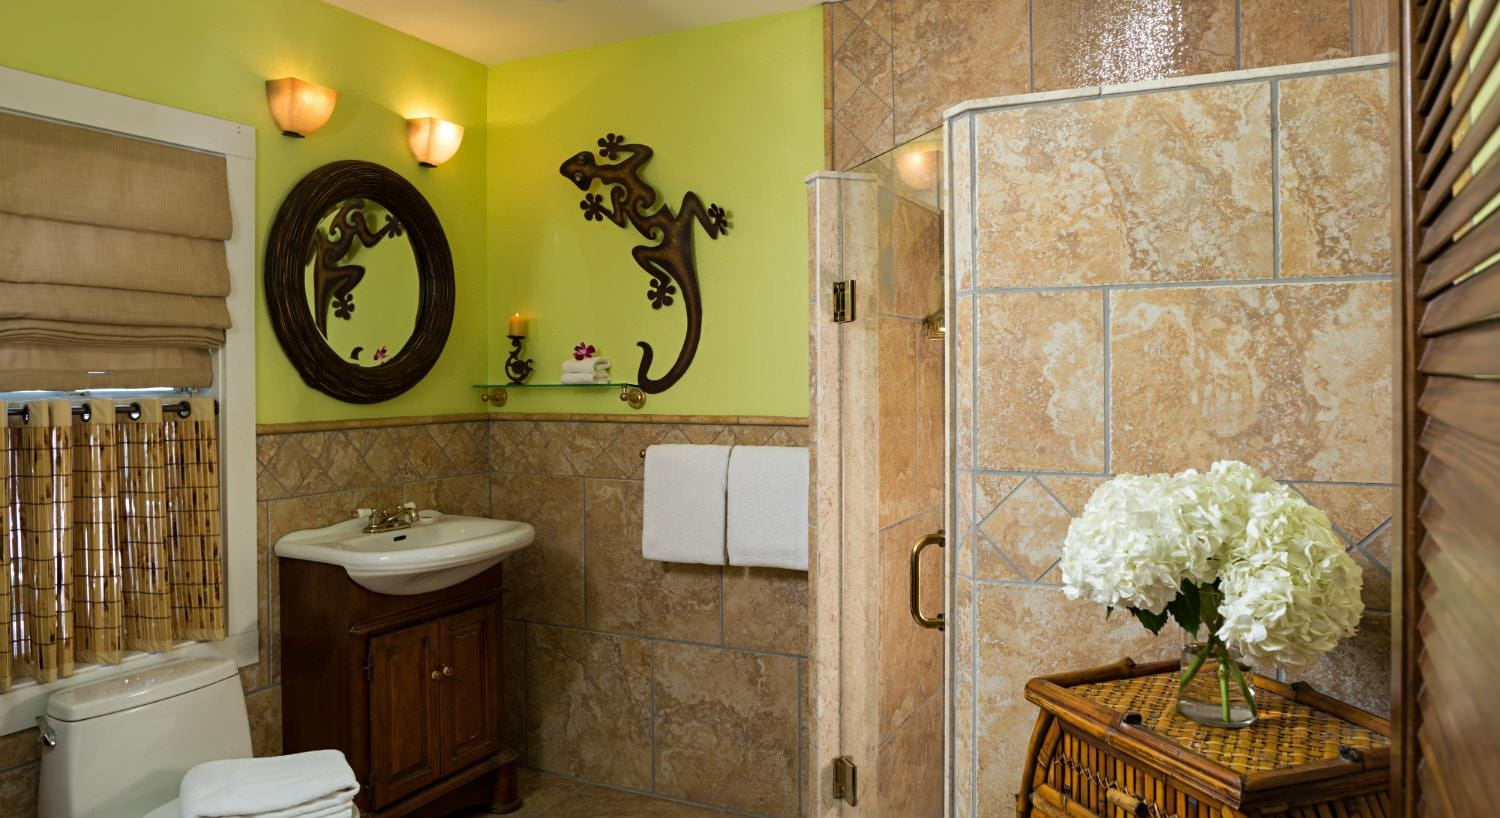 Bright yellow bathroom with gecko figurine on wall with walk in tiled shower with sink with bamboo mirror